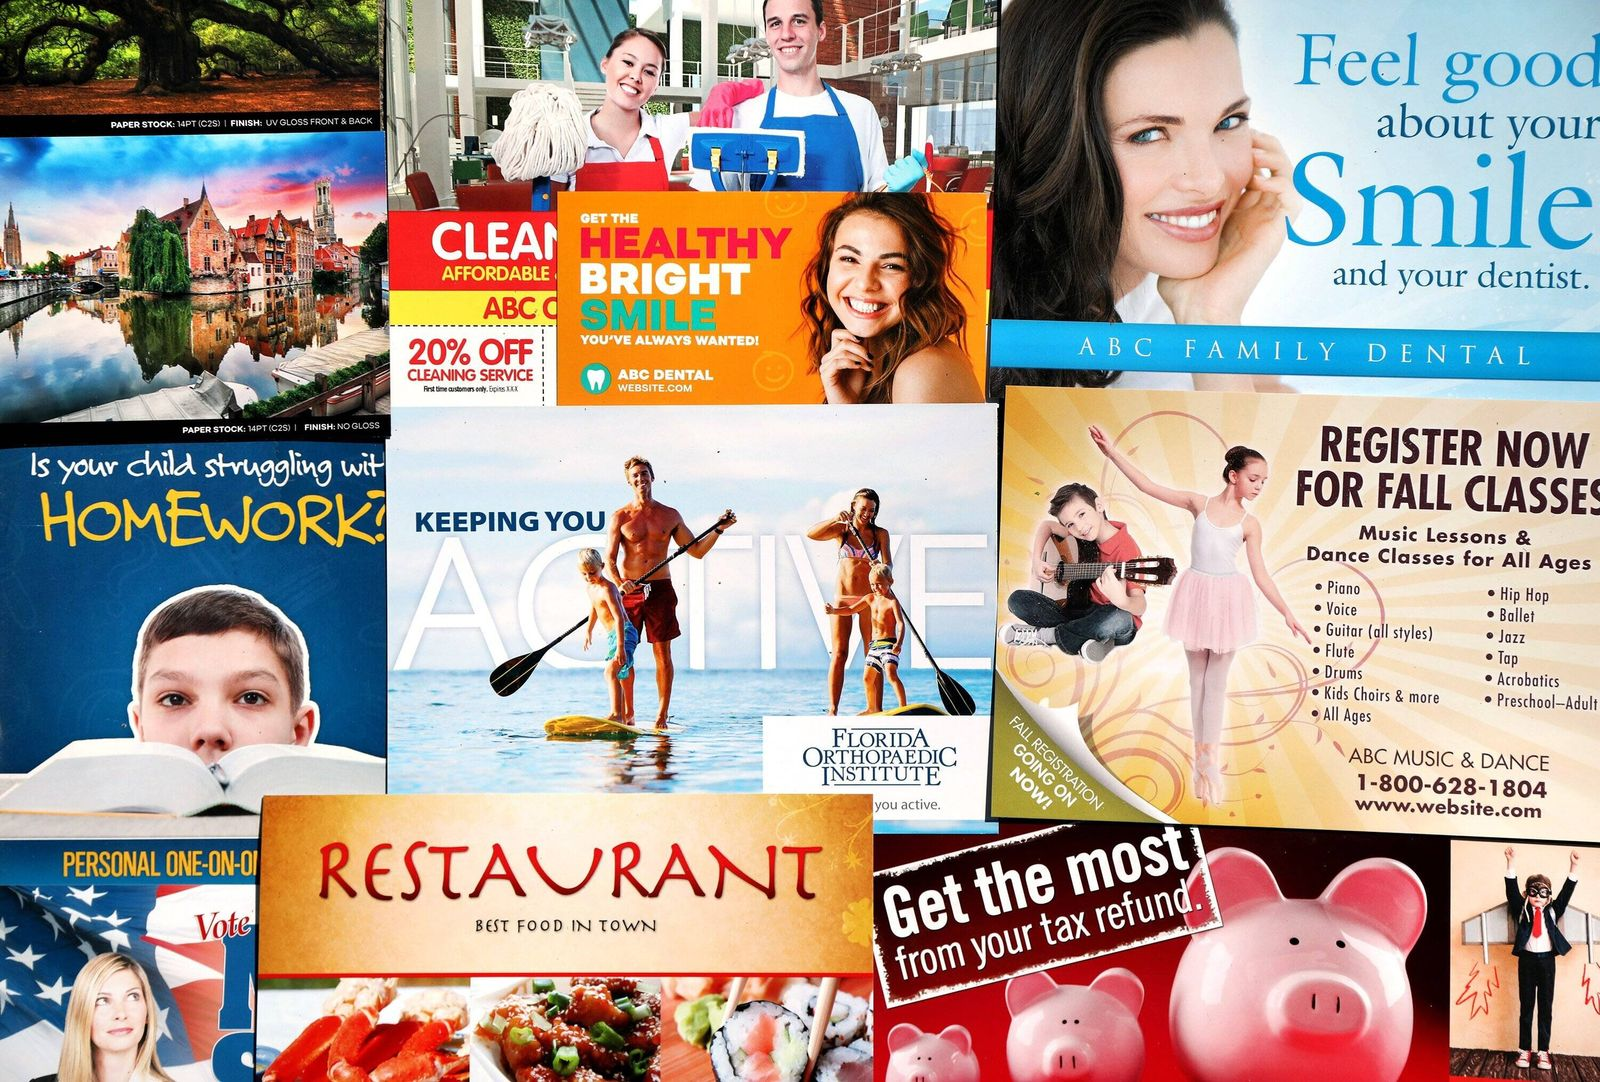 March 12, 2021, CLEARWATER, Florida, USA: These direct-mail postcard advertisements are used by PostcardMania to market